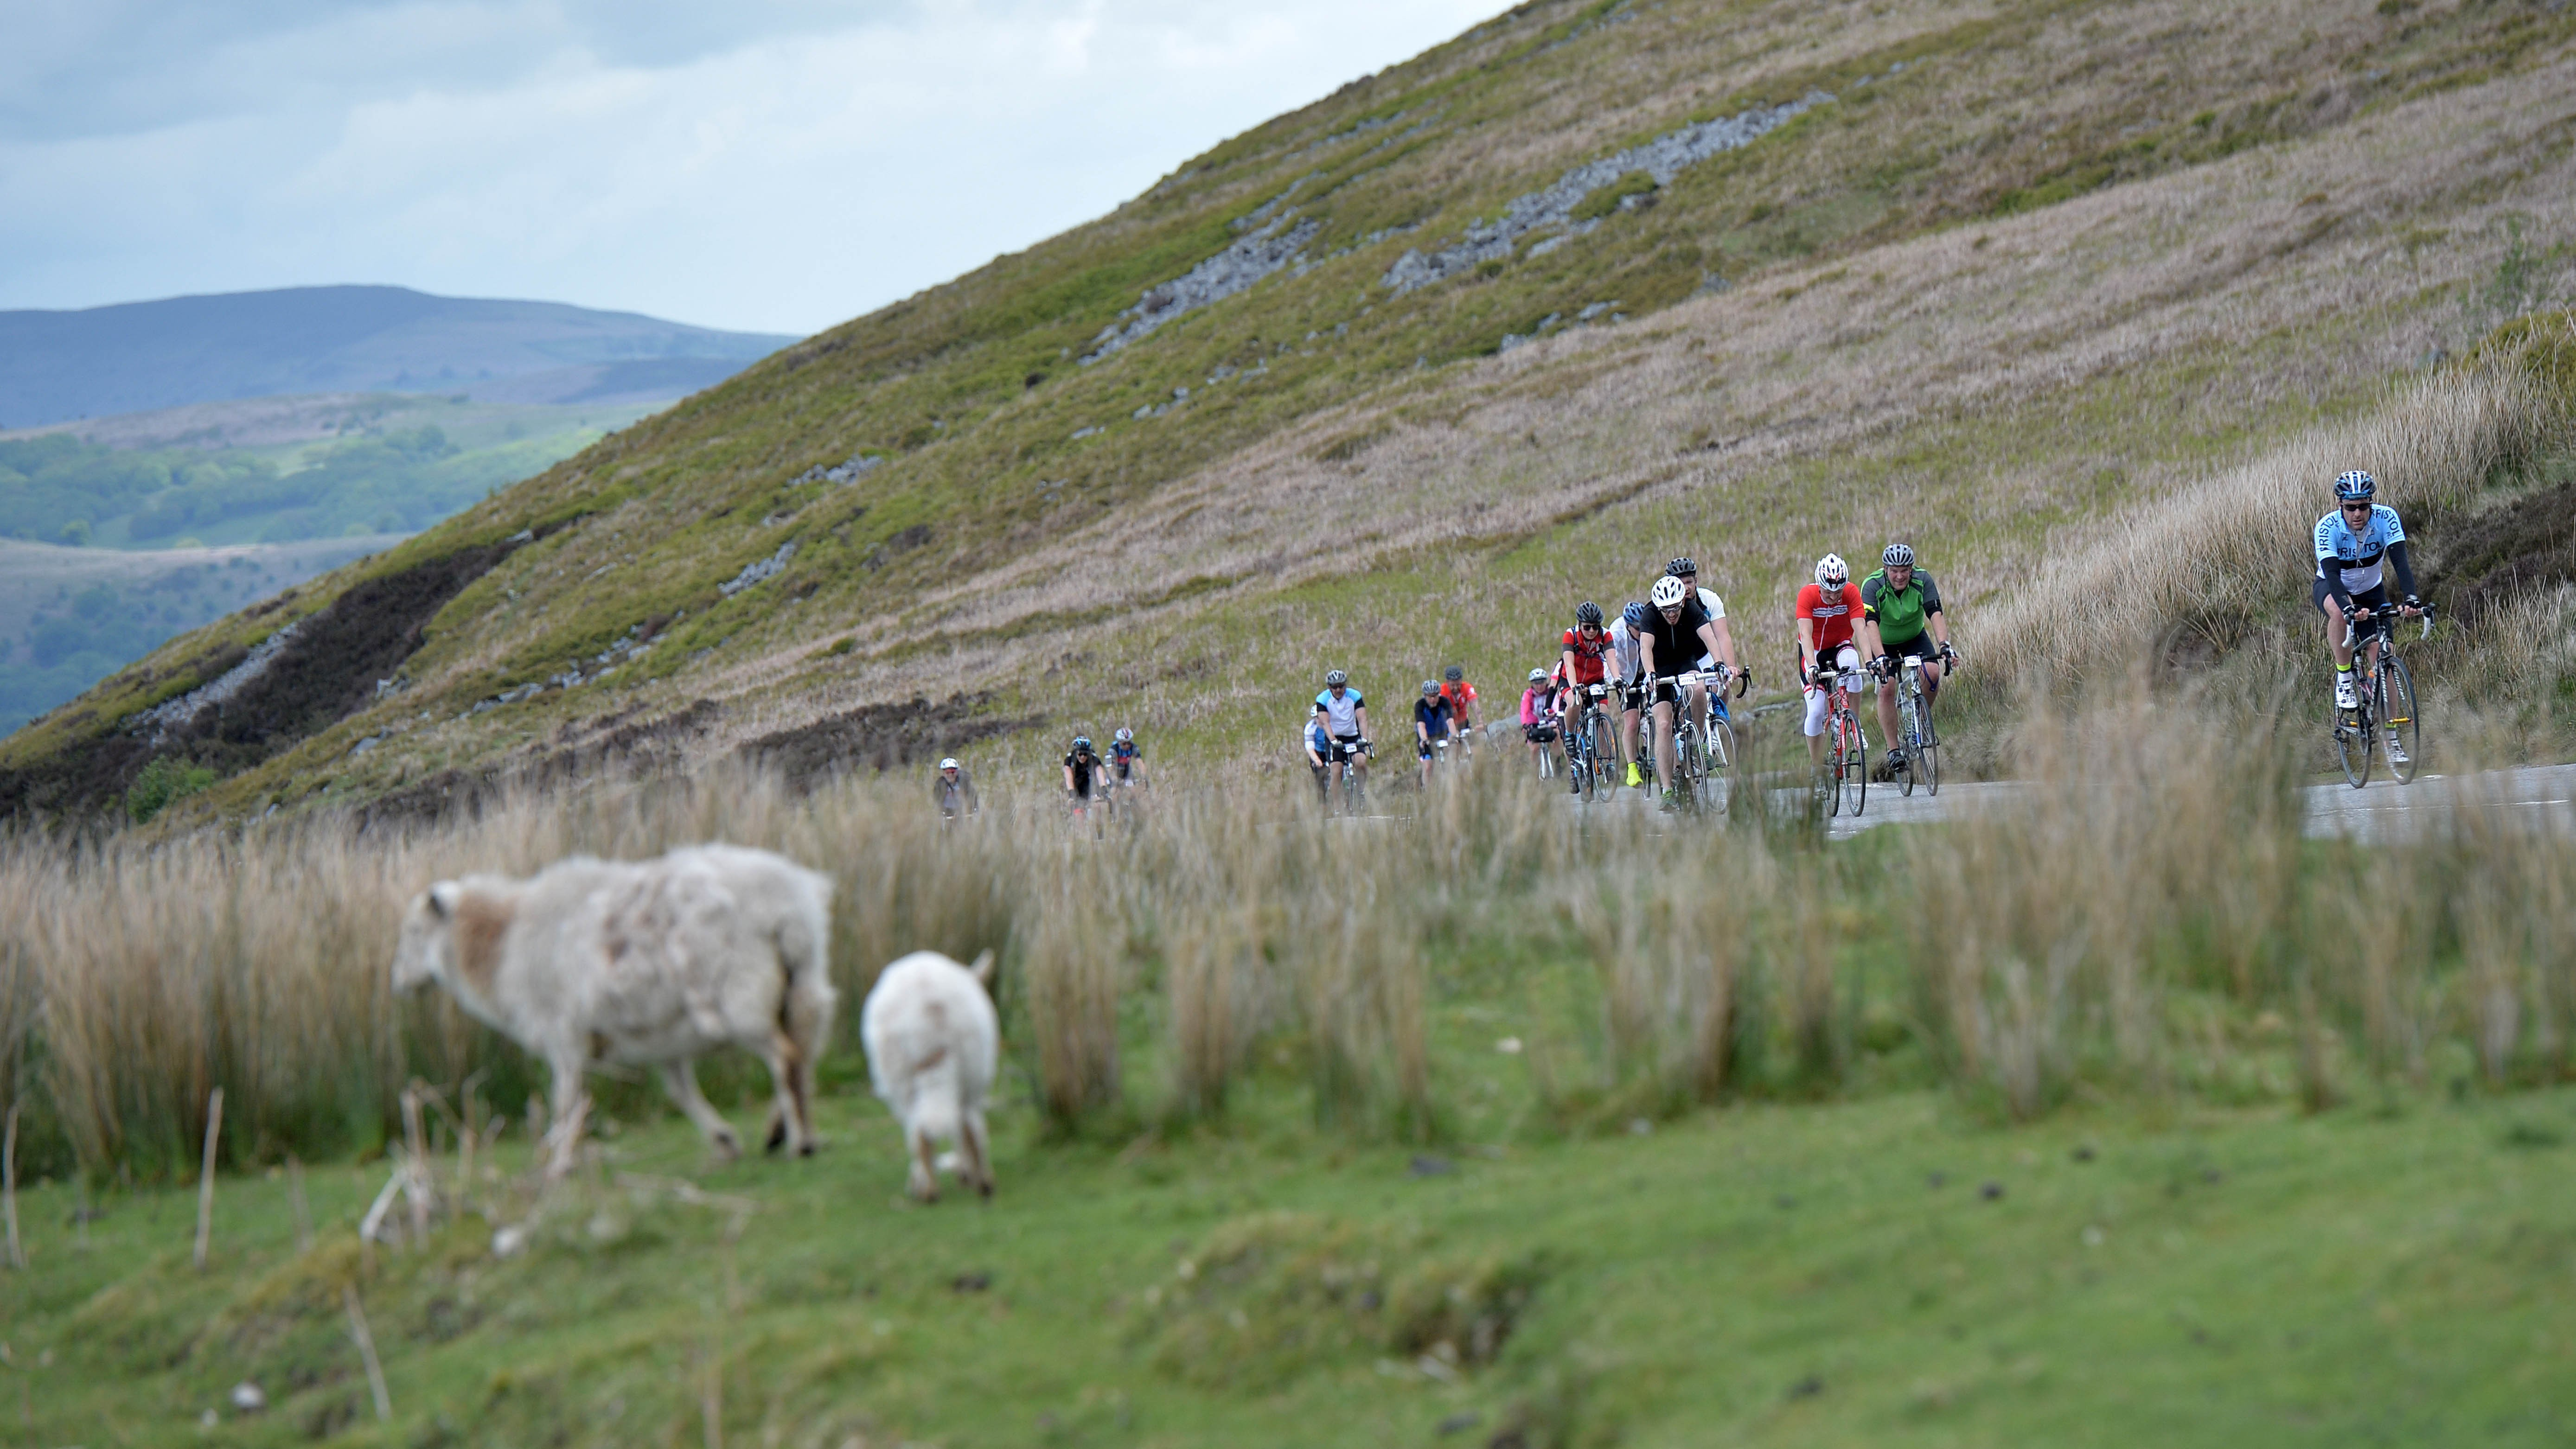 The fully closed routes will take you through some of the most stunning scenery in south Wales